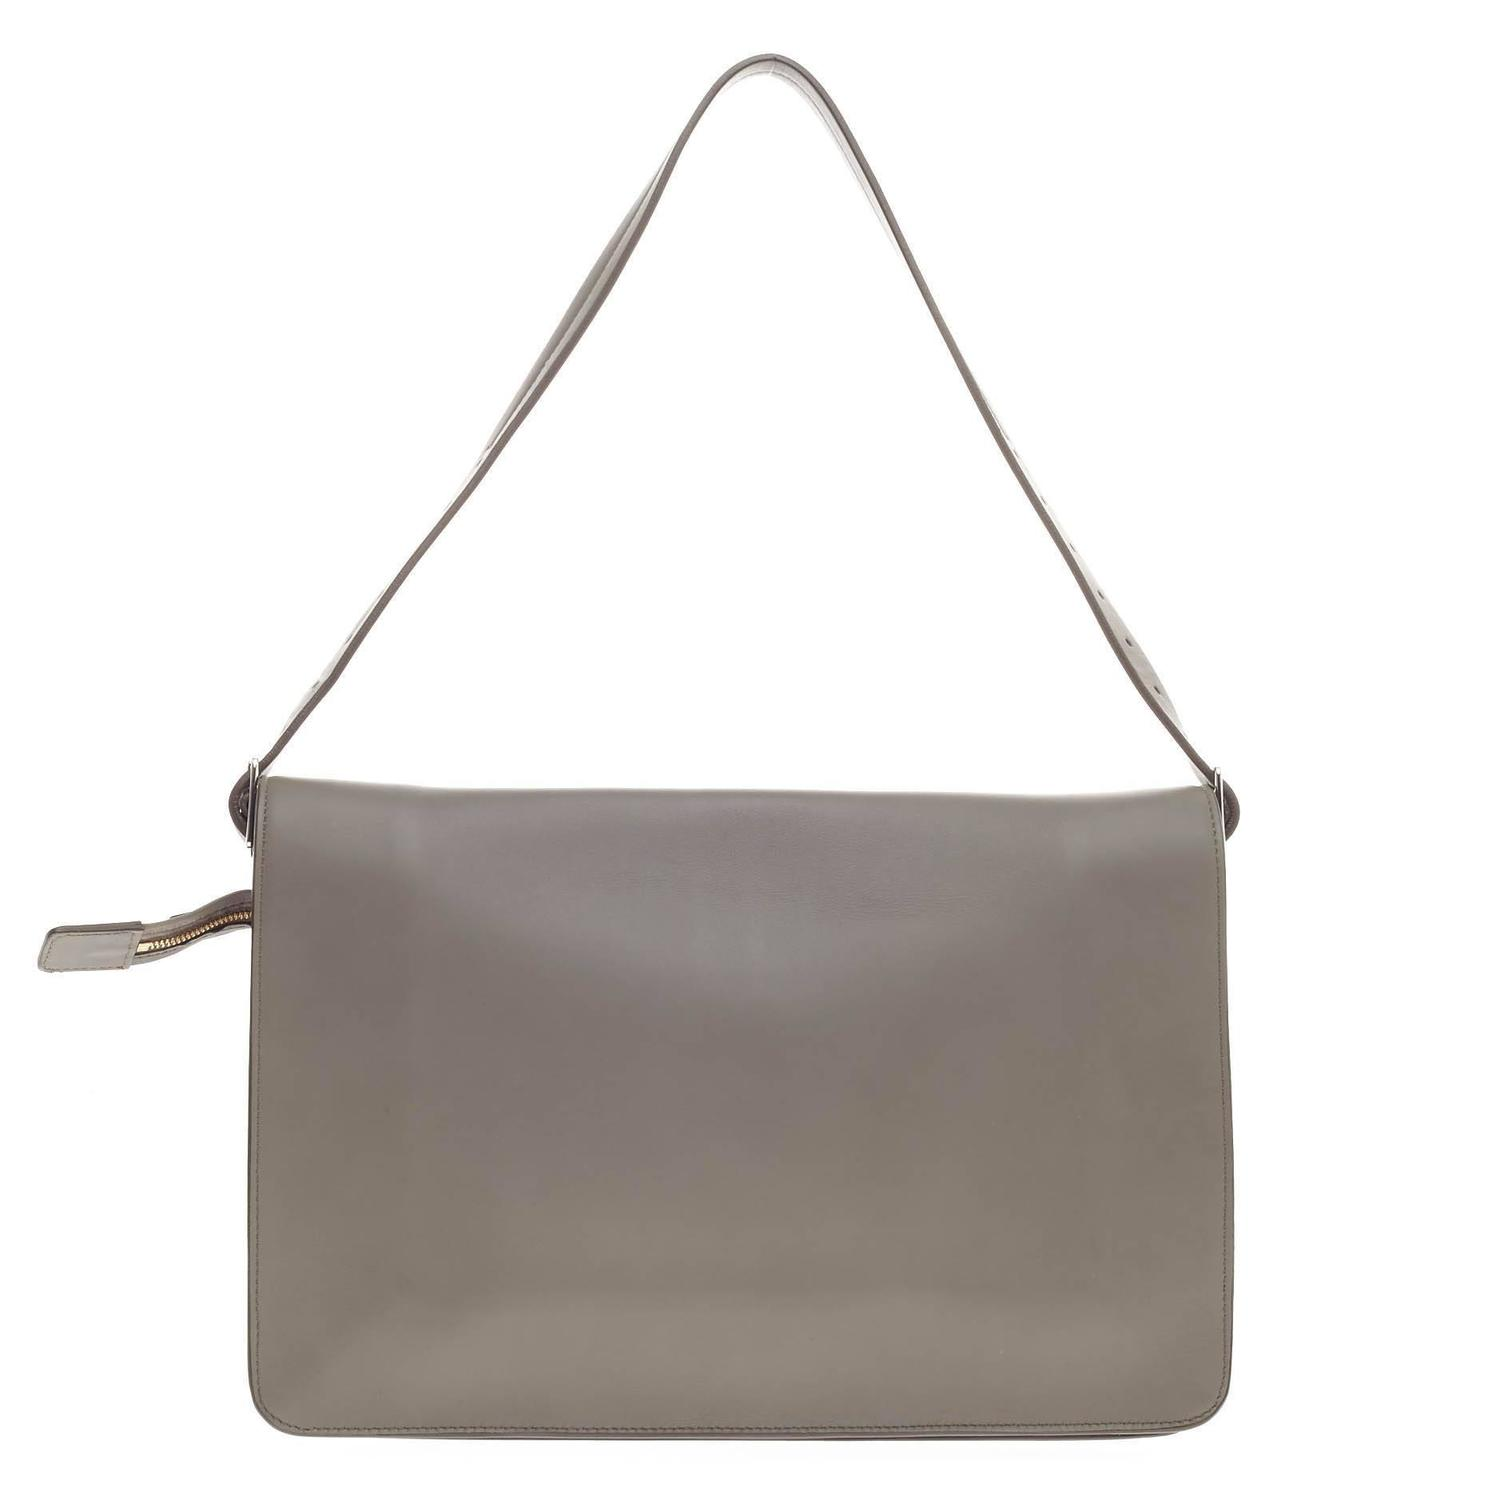 celine tote bag for sale - Celine Clasp Foldover Shoulder Bag Leather Medium at 1stdibs